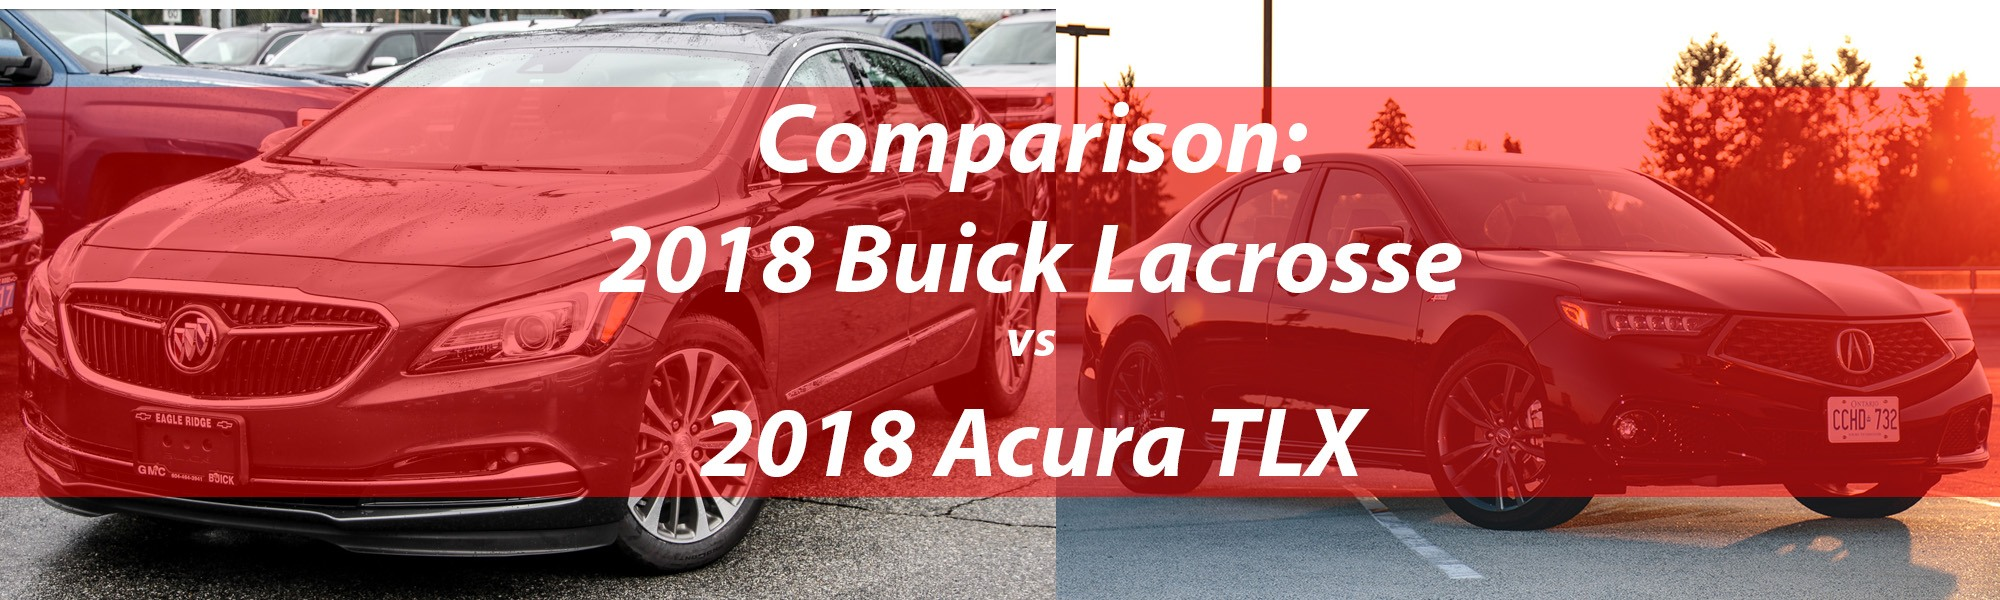 lacrosse vs tlx header